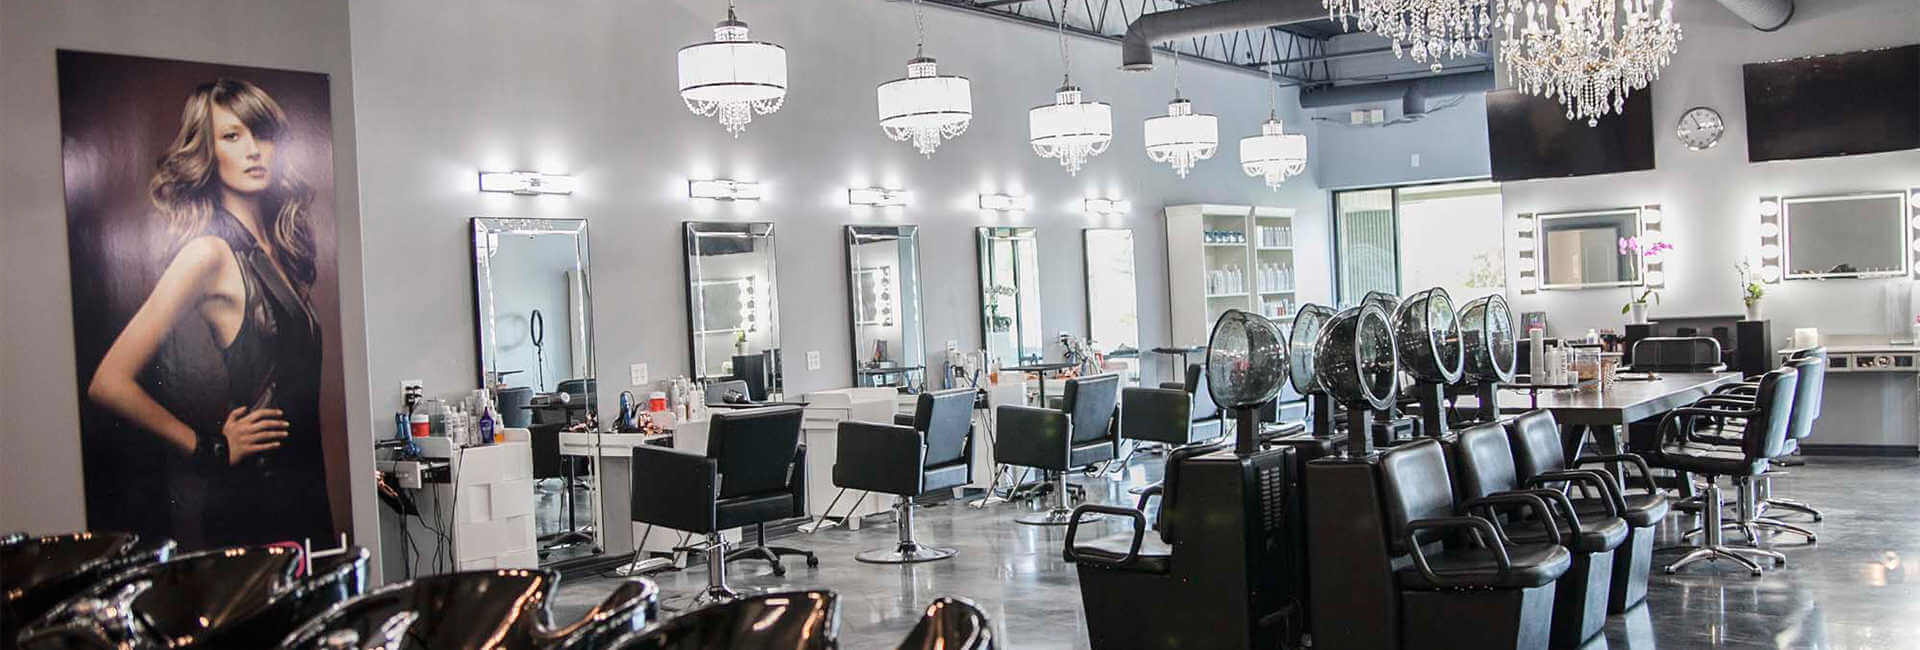 Image of the interior of HQ Salon